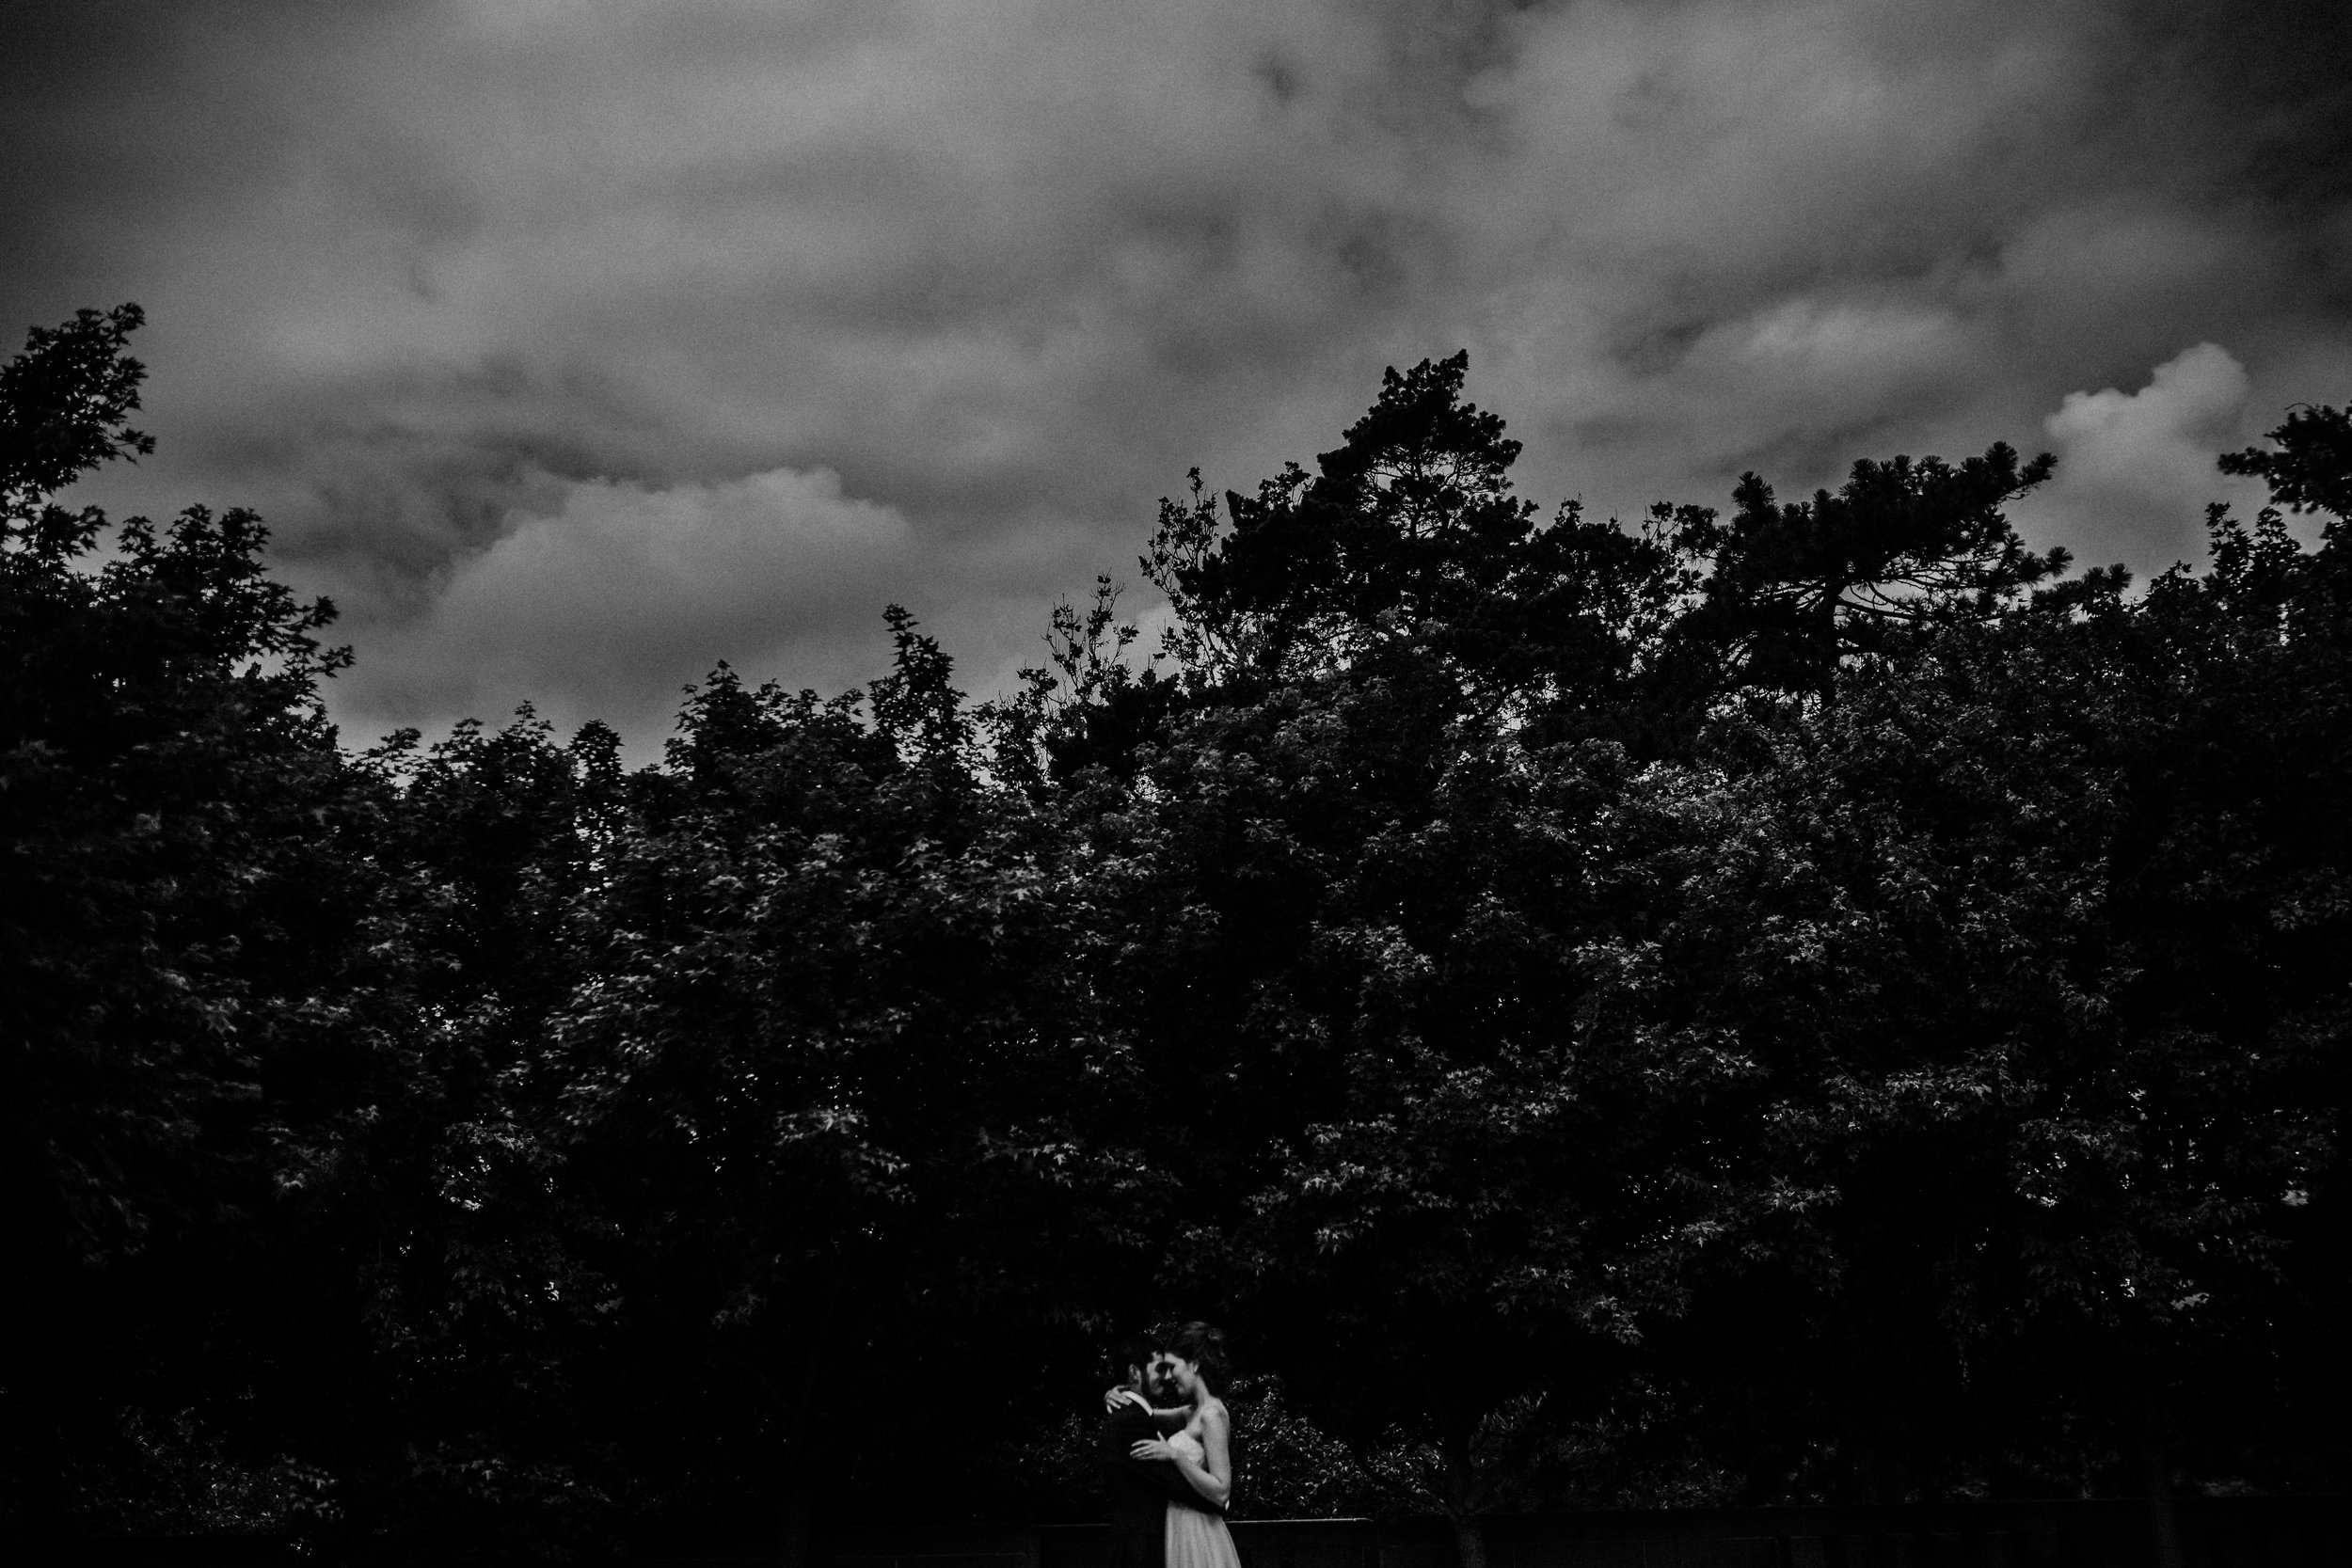 Bride and groom portraits at Nelson Atkins Museum mid town KC | Glass Labyrinth by Robert Morris |Shelbie & Jospeh's Summer Love Story : Kansas City Wedding | Hanna Hill Photography